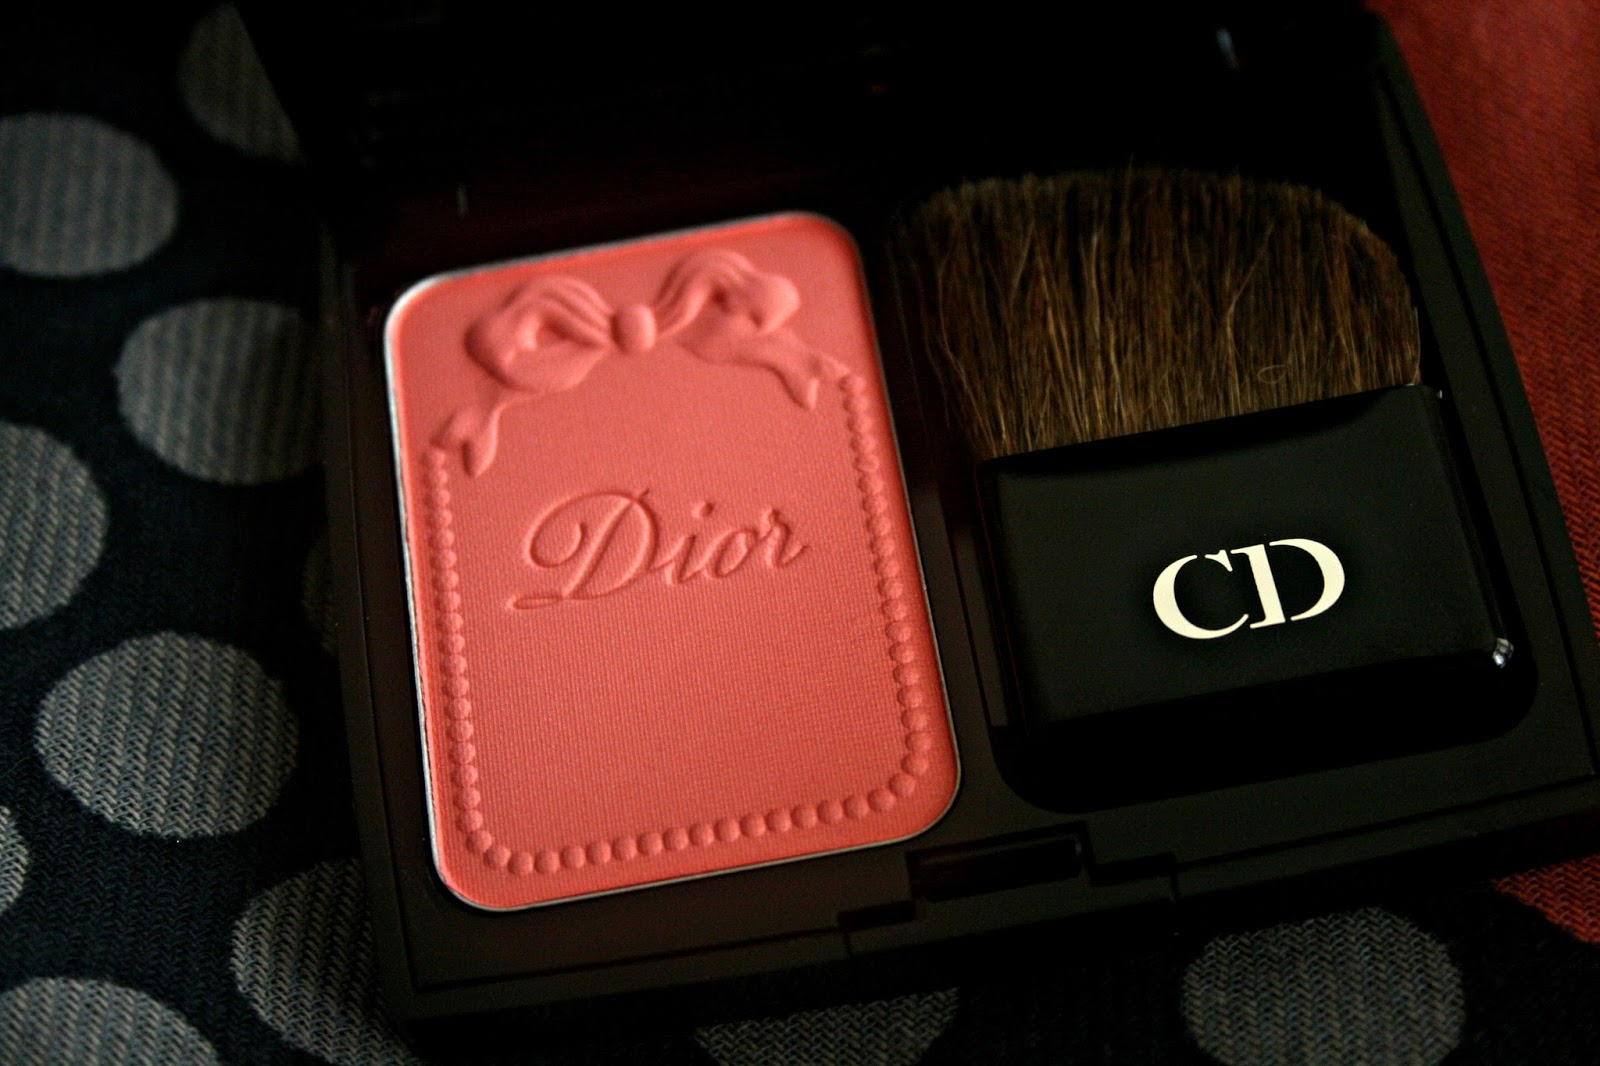 Dior Blush in Corail Bagatelle Dior Trianon Spring 2014 Collection